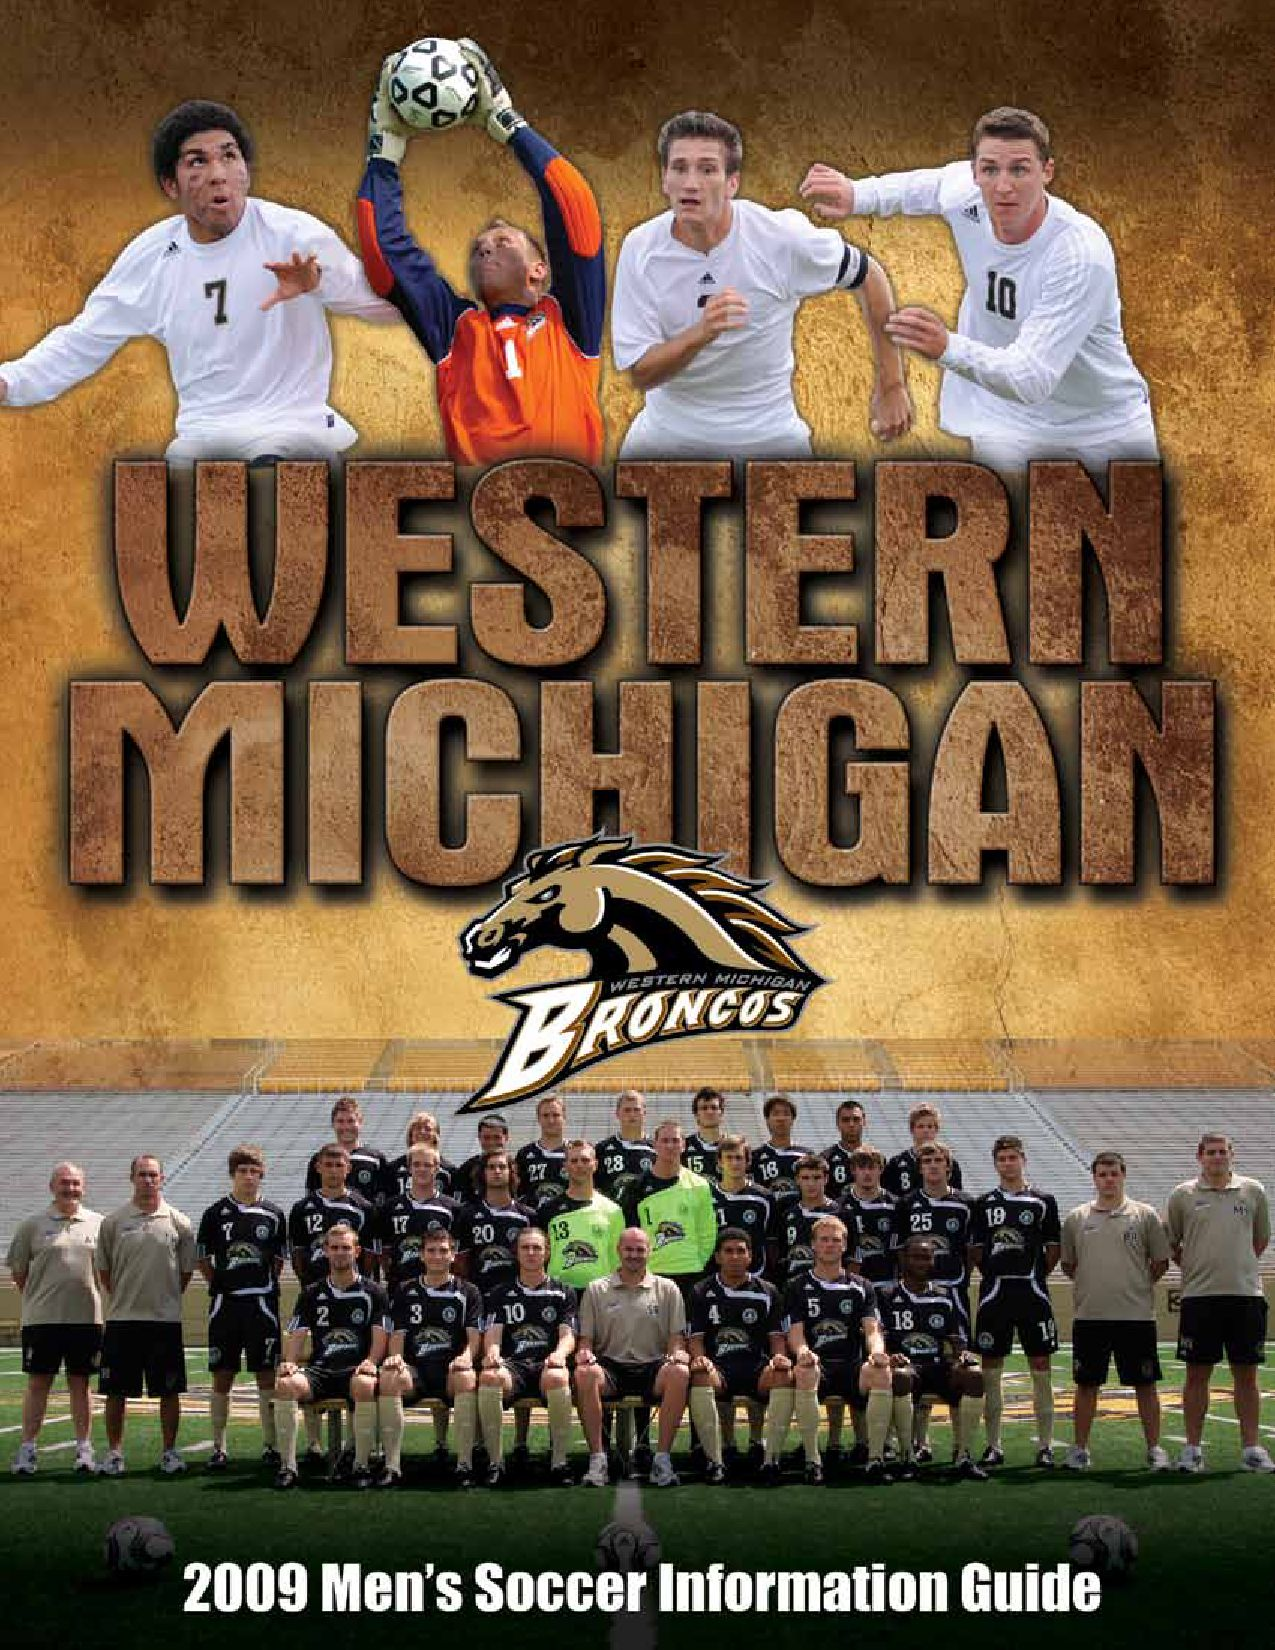 stony brook athletics annual report by stony brook 2009 western michigan men s soccer information guide